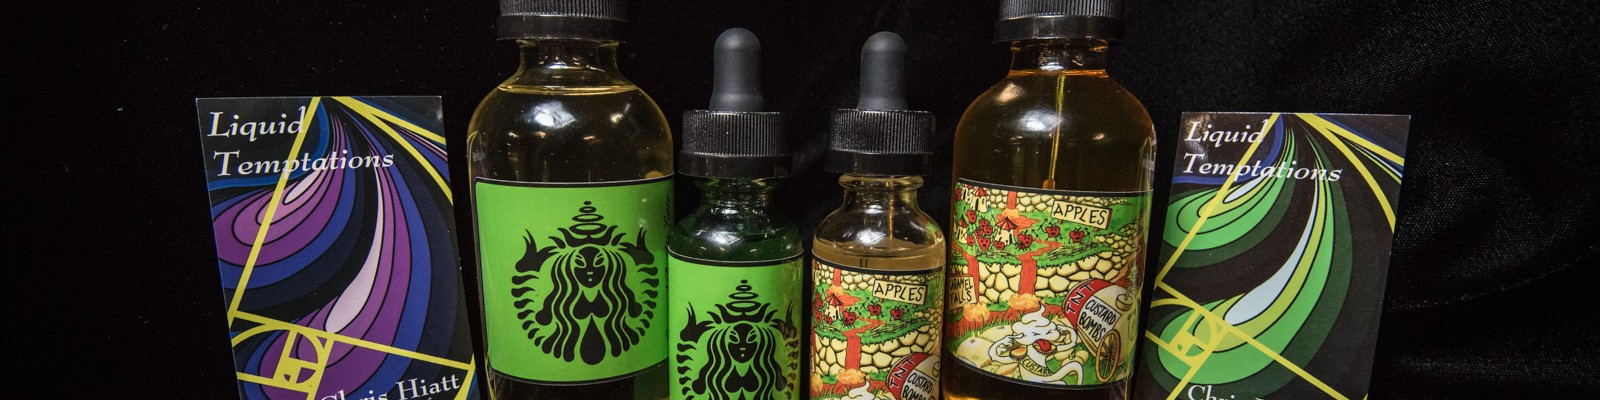 E-Liquid / E-Juice – Liquid Temptations